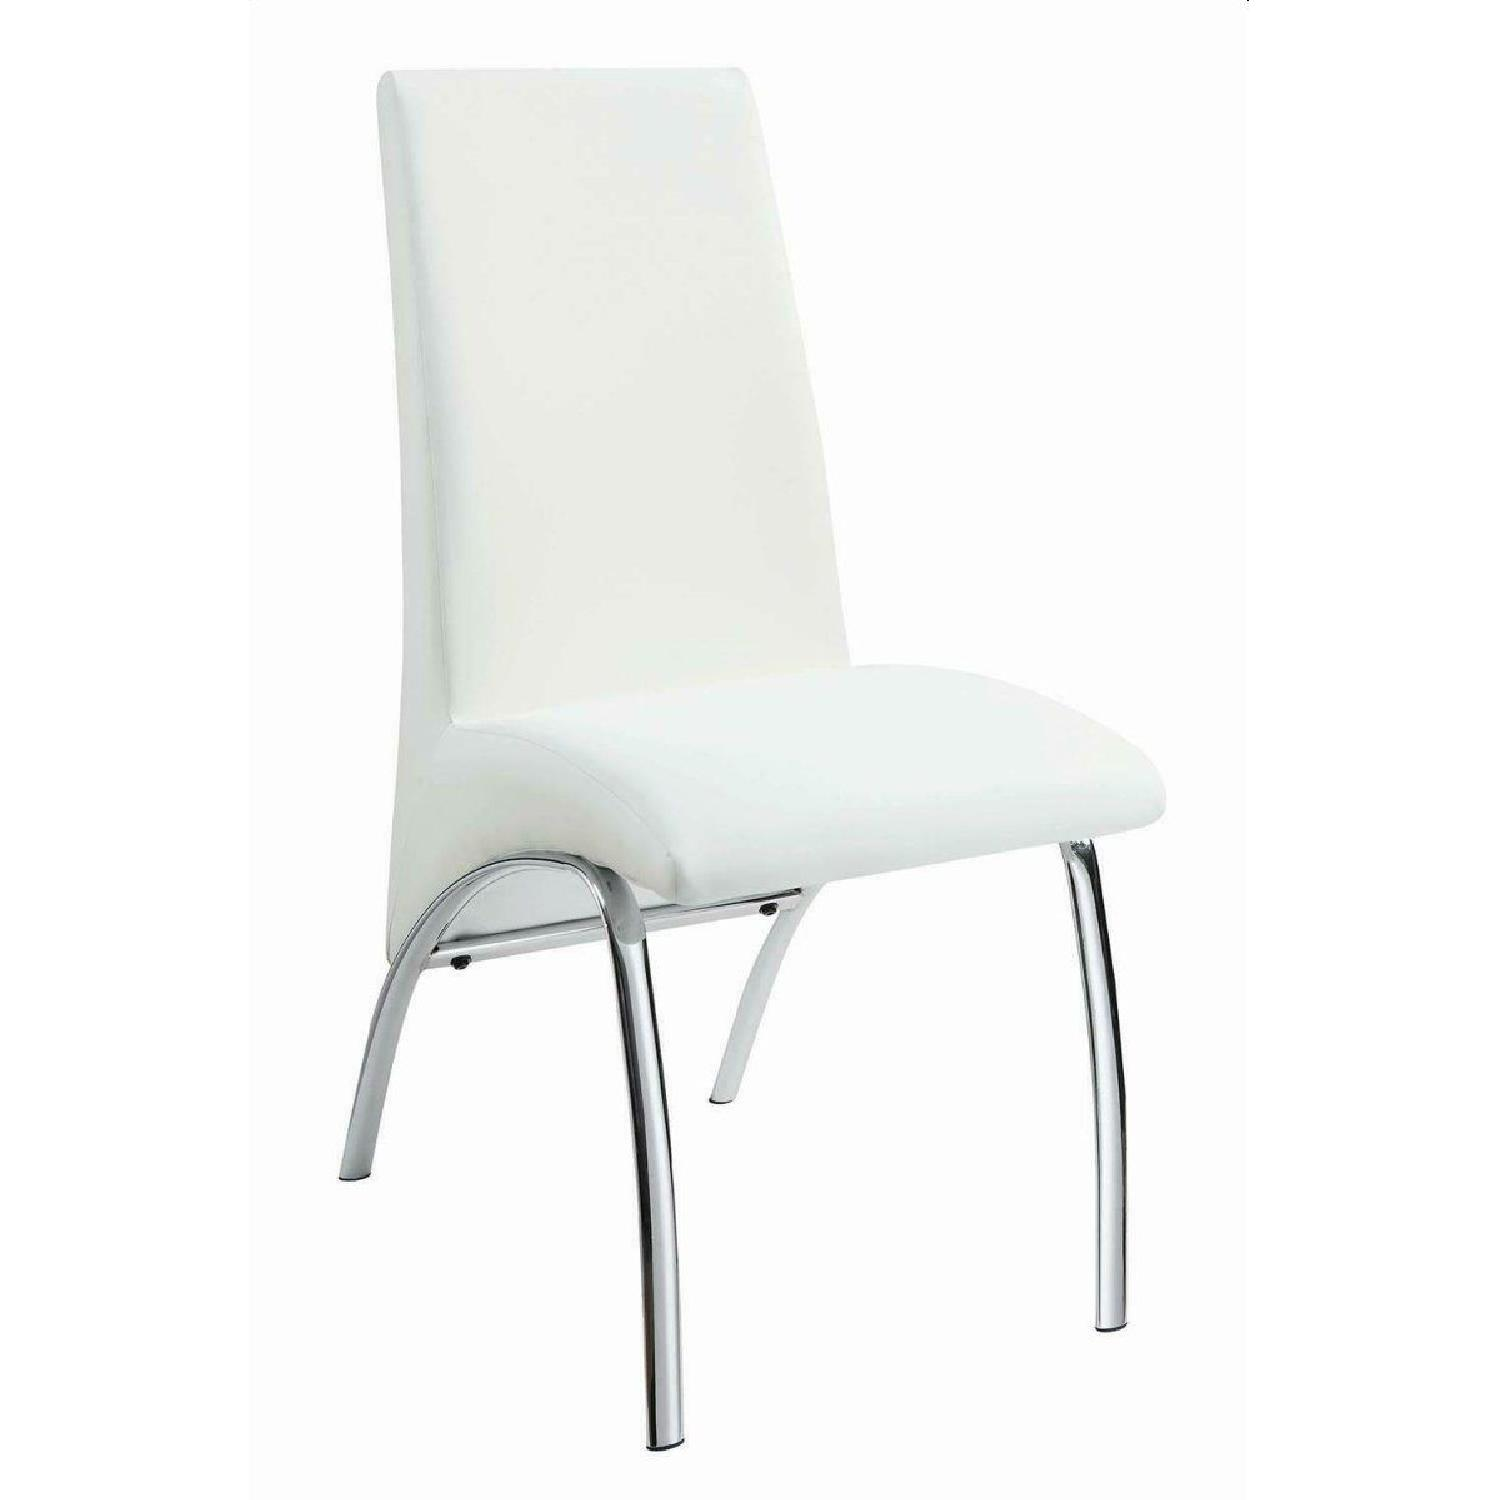 Modern Dining Chair in White Leatherette w/ Chrome Legs - image-0